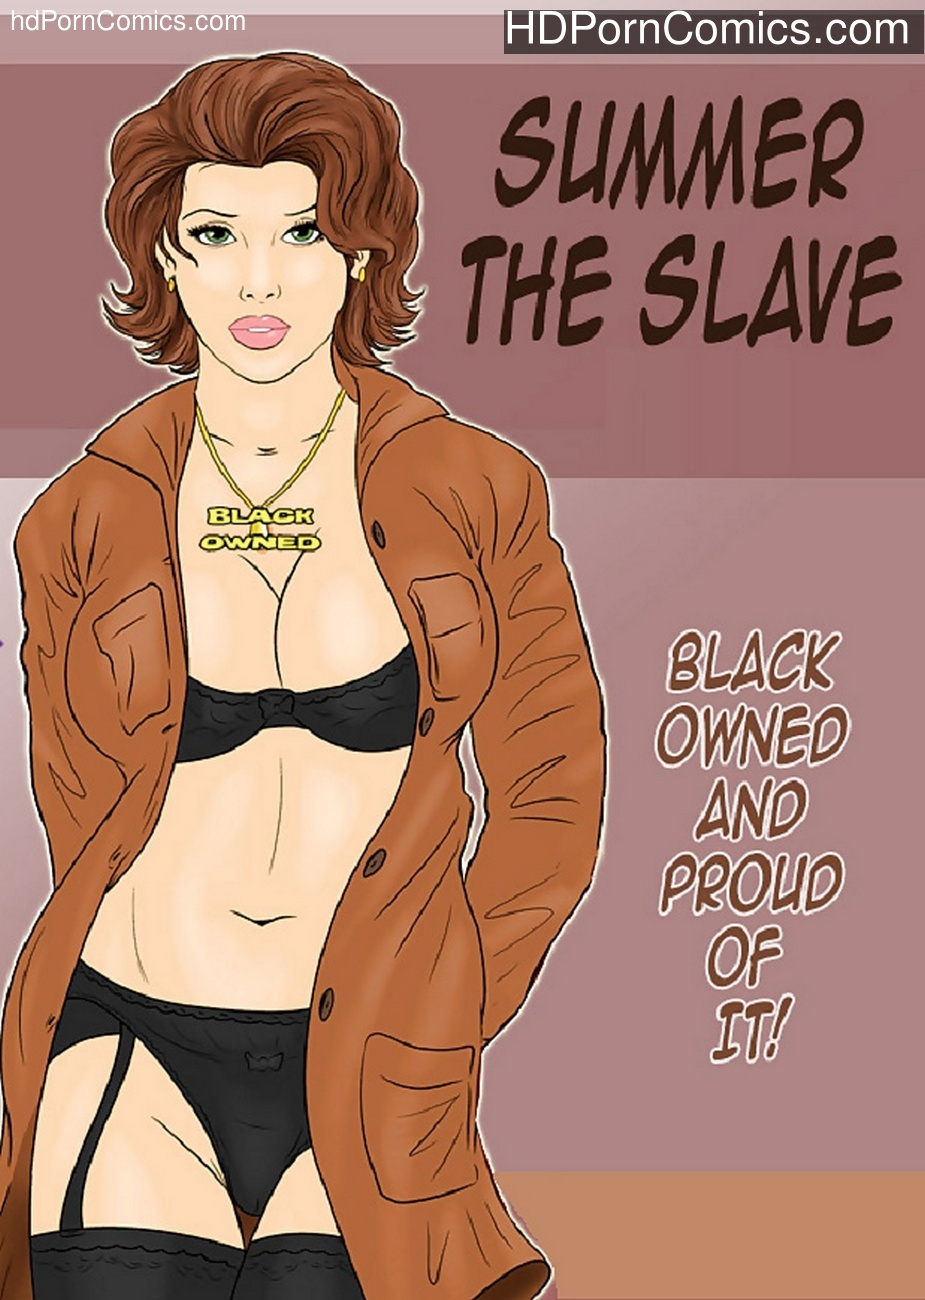 Summer The Slave 1 free sex comic